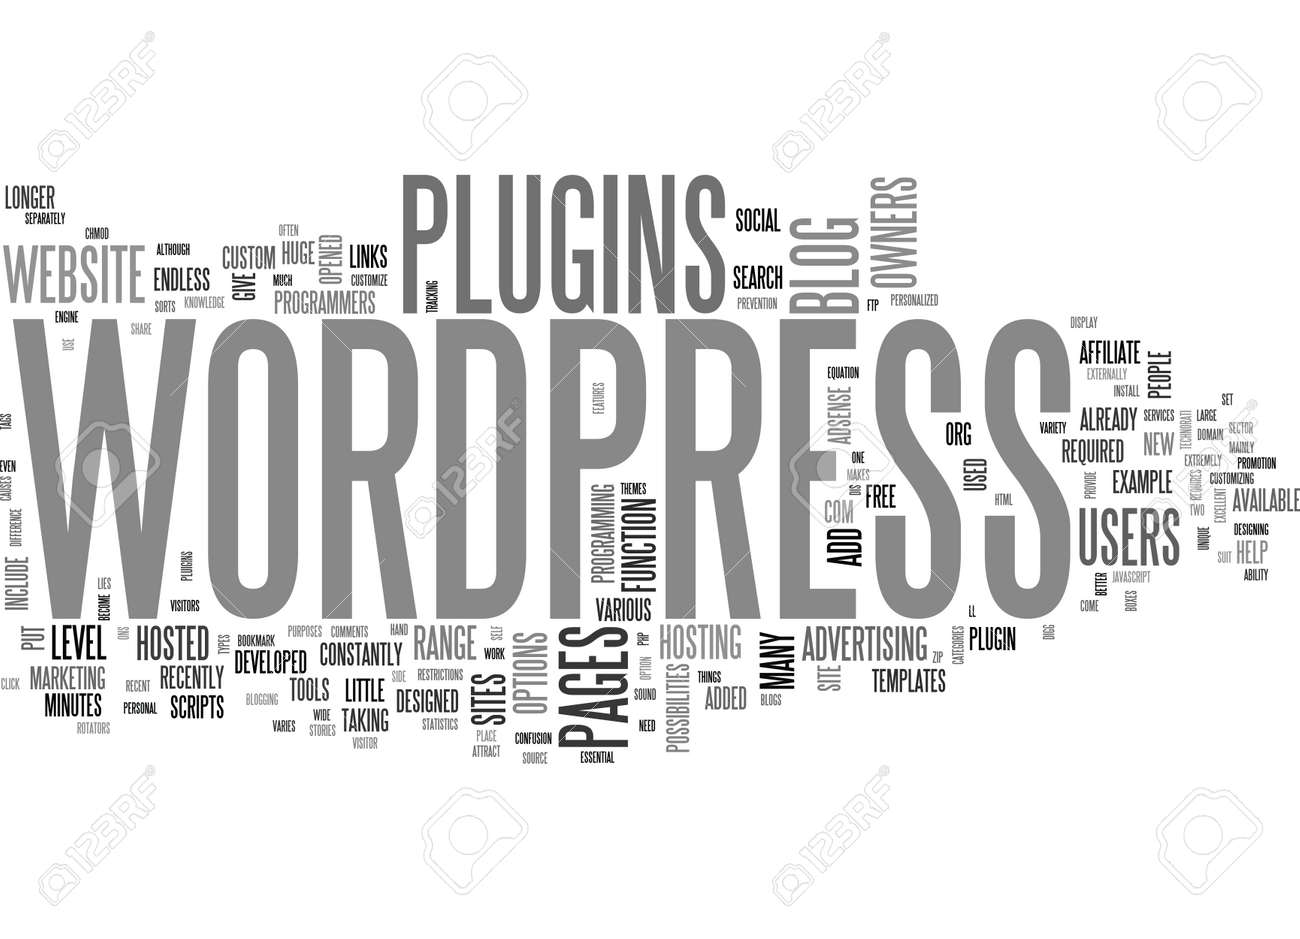 WHAT CAN WORDPRESS PLUGINS DO FOR YOU TEXT WORD CLOUD CONCEPT - 79581680